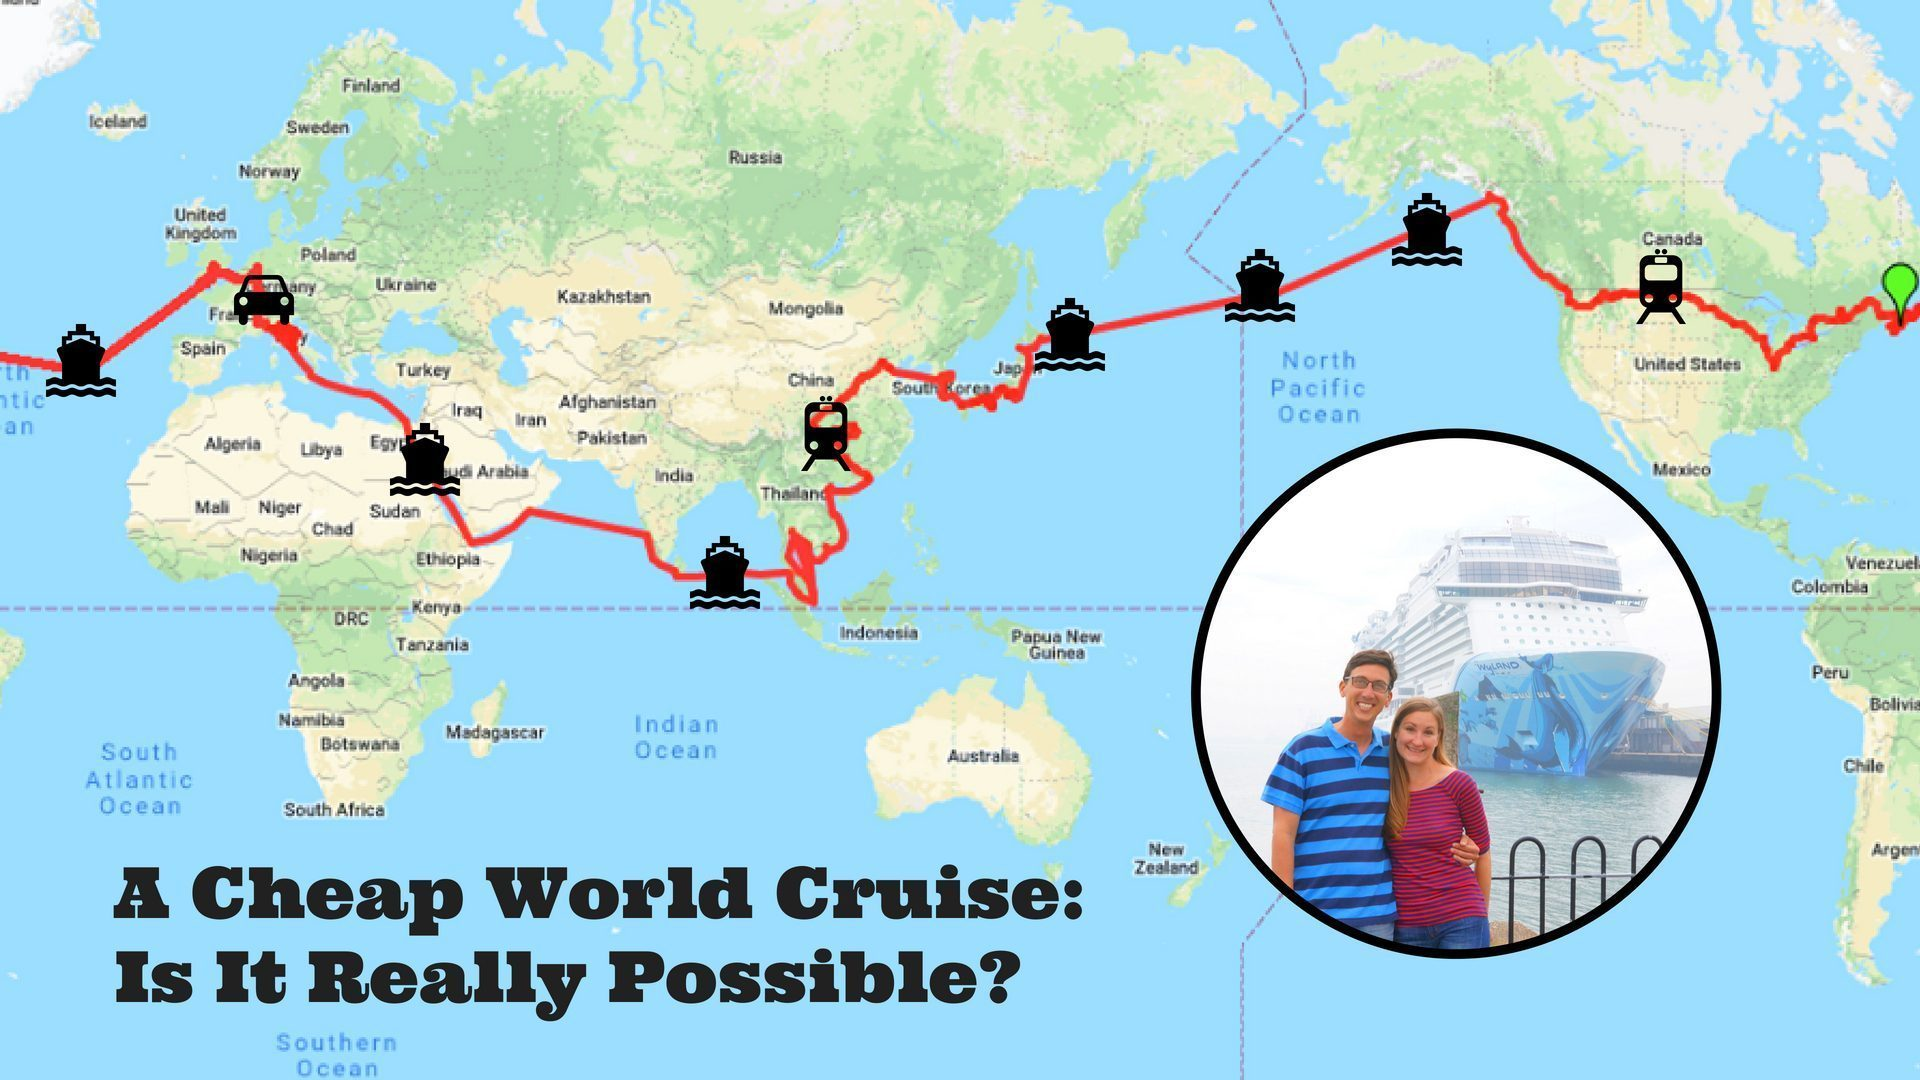 A Cheap World Cruise? How We Used a Travel Trick To Afford ...